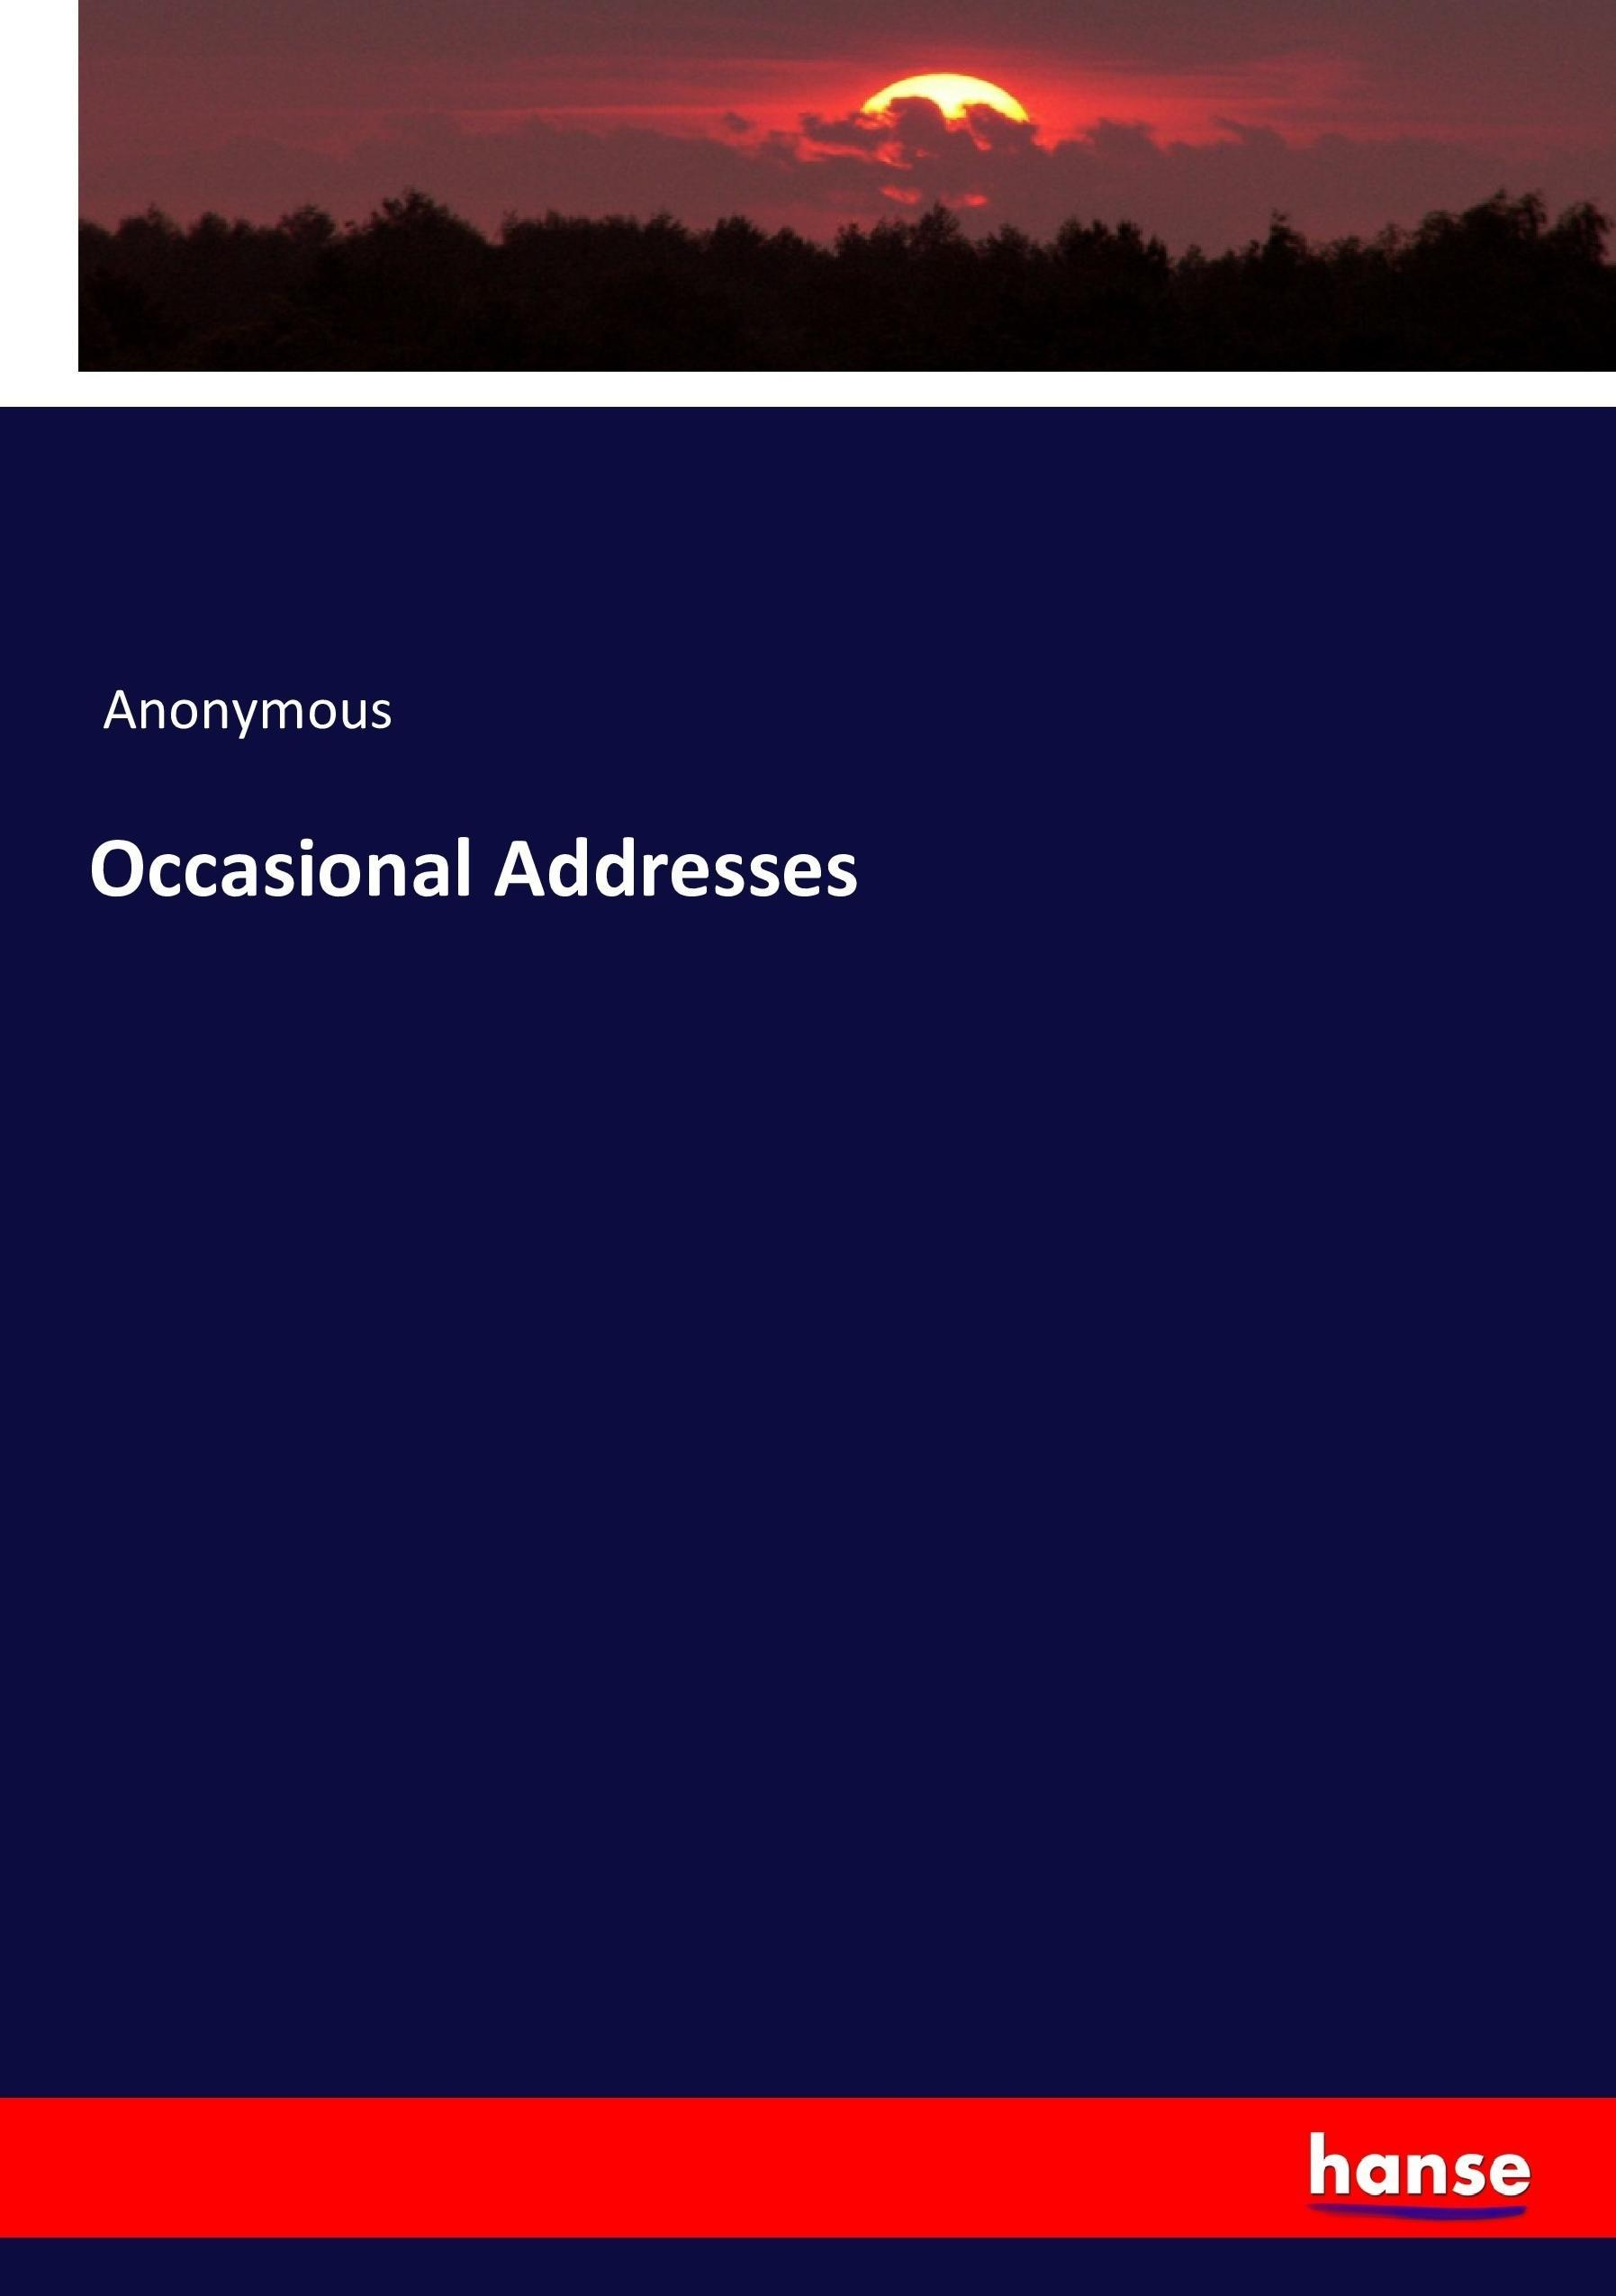 Occasional Addresses Anonymous